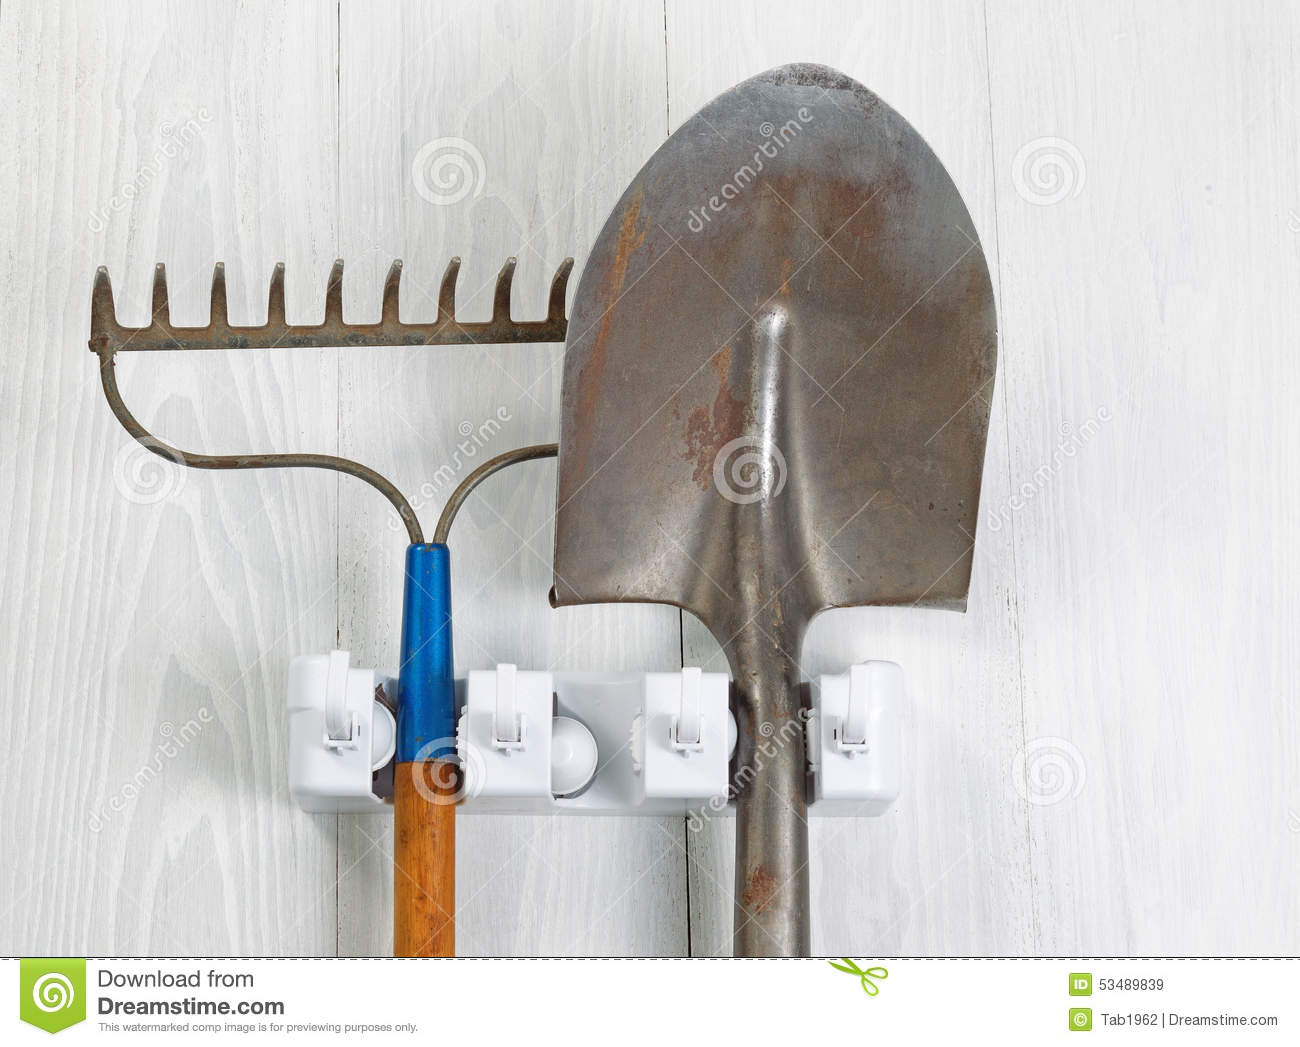 Used Garden Tools Hanging From Rack On White Wooden Boards